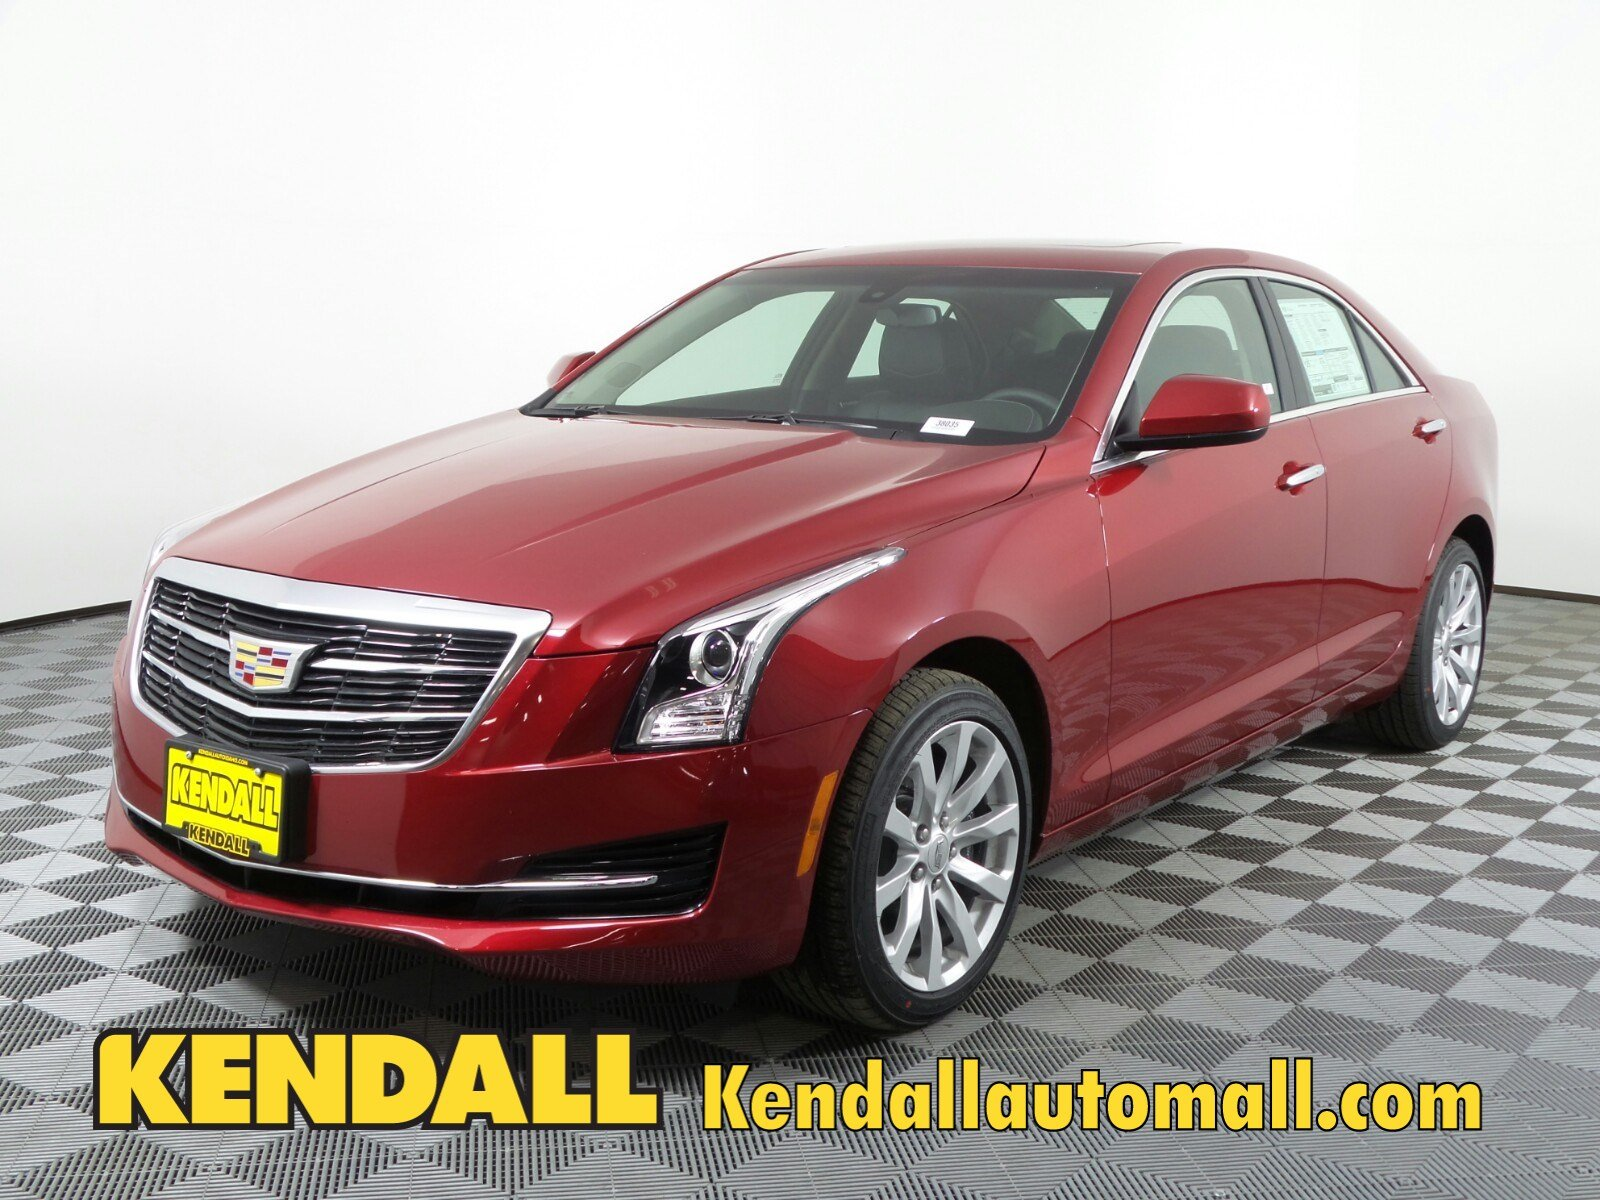 cadillac at cars kendall the new in nampa sedan awd inventory ats door